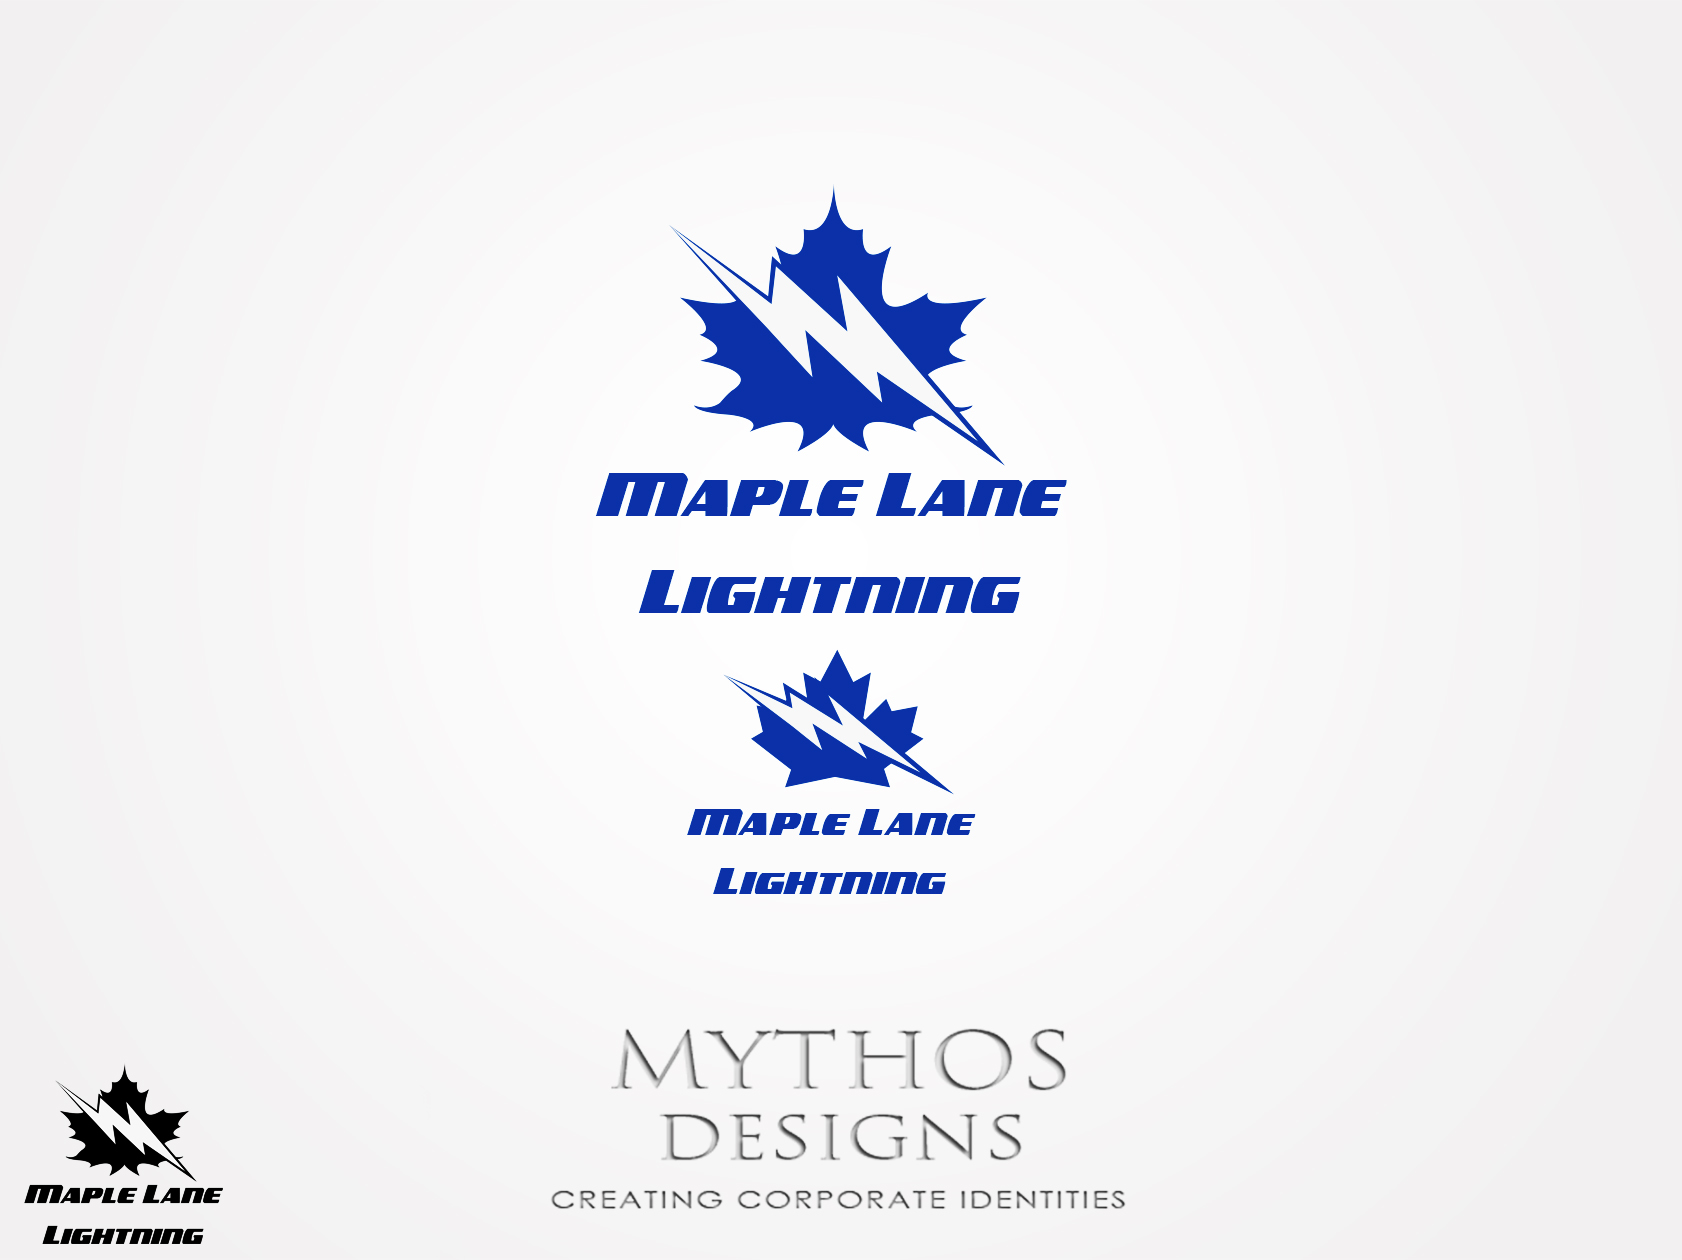 Logo Design by Mythos Designs - Entry No. 8 in the Logo Design Contest Maple Lane Logo Design.